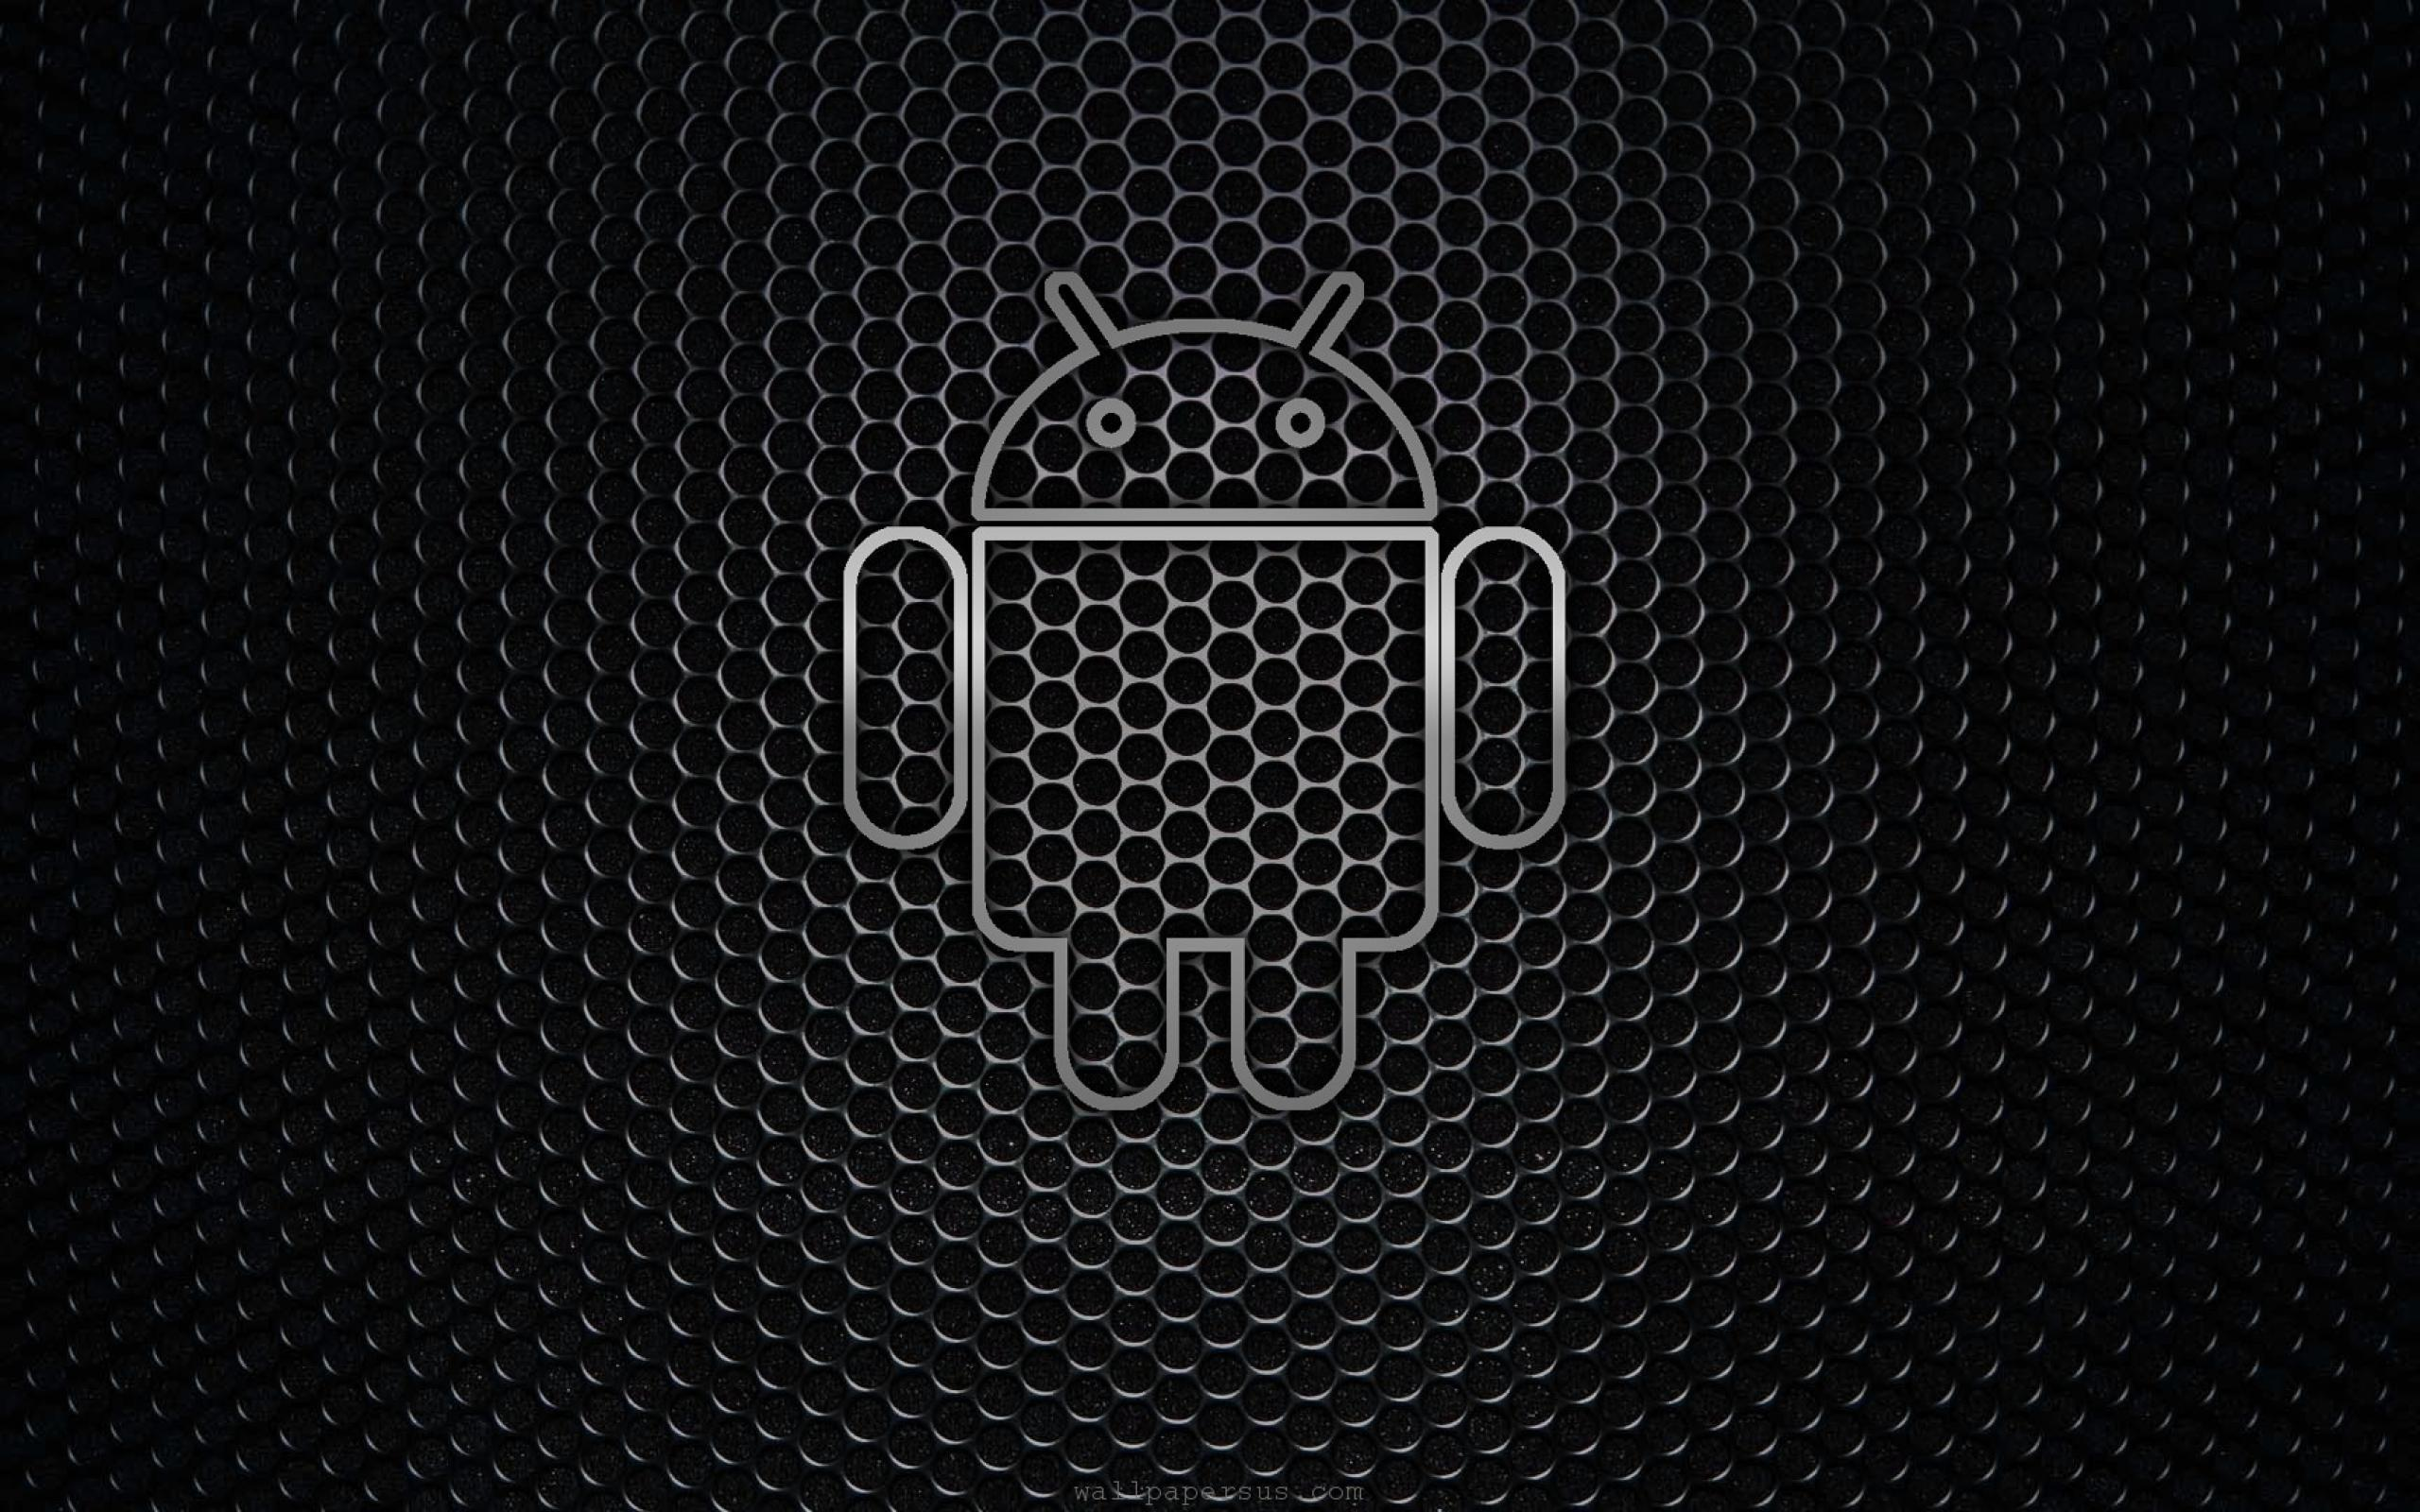 Desktop android black logo backgrounds wallpapers